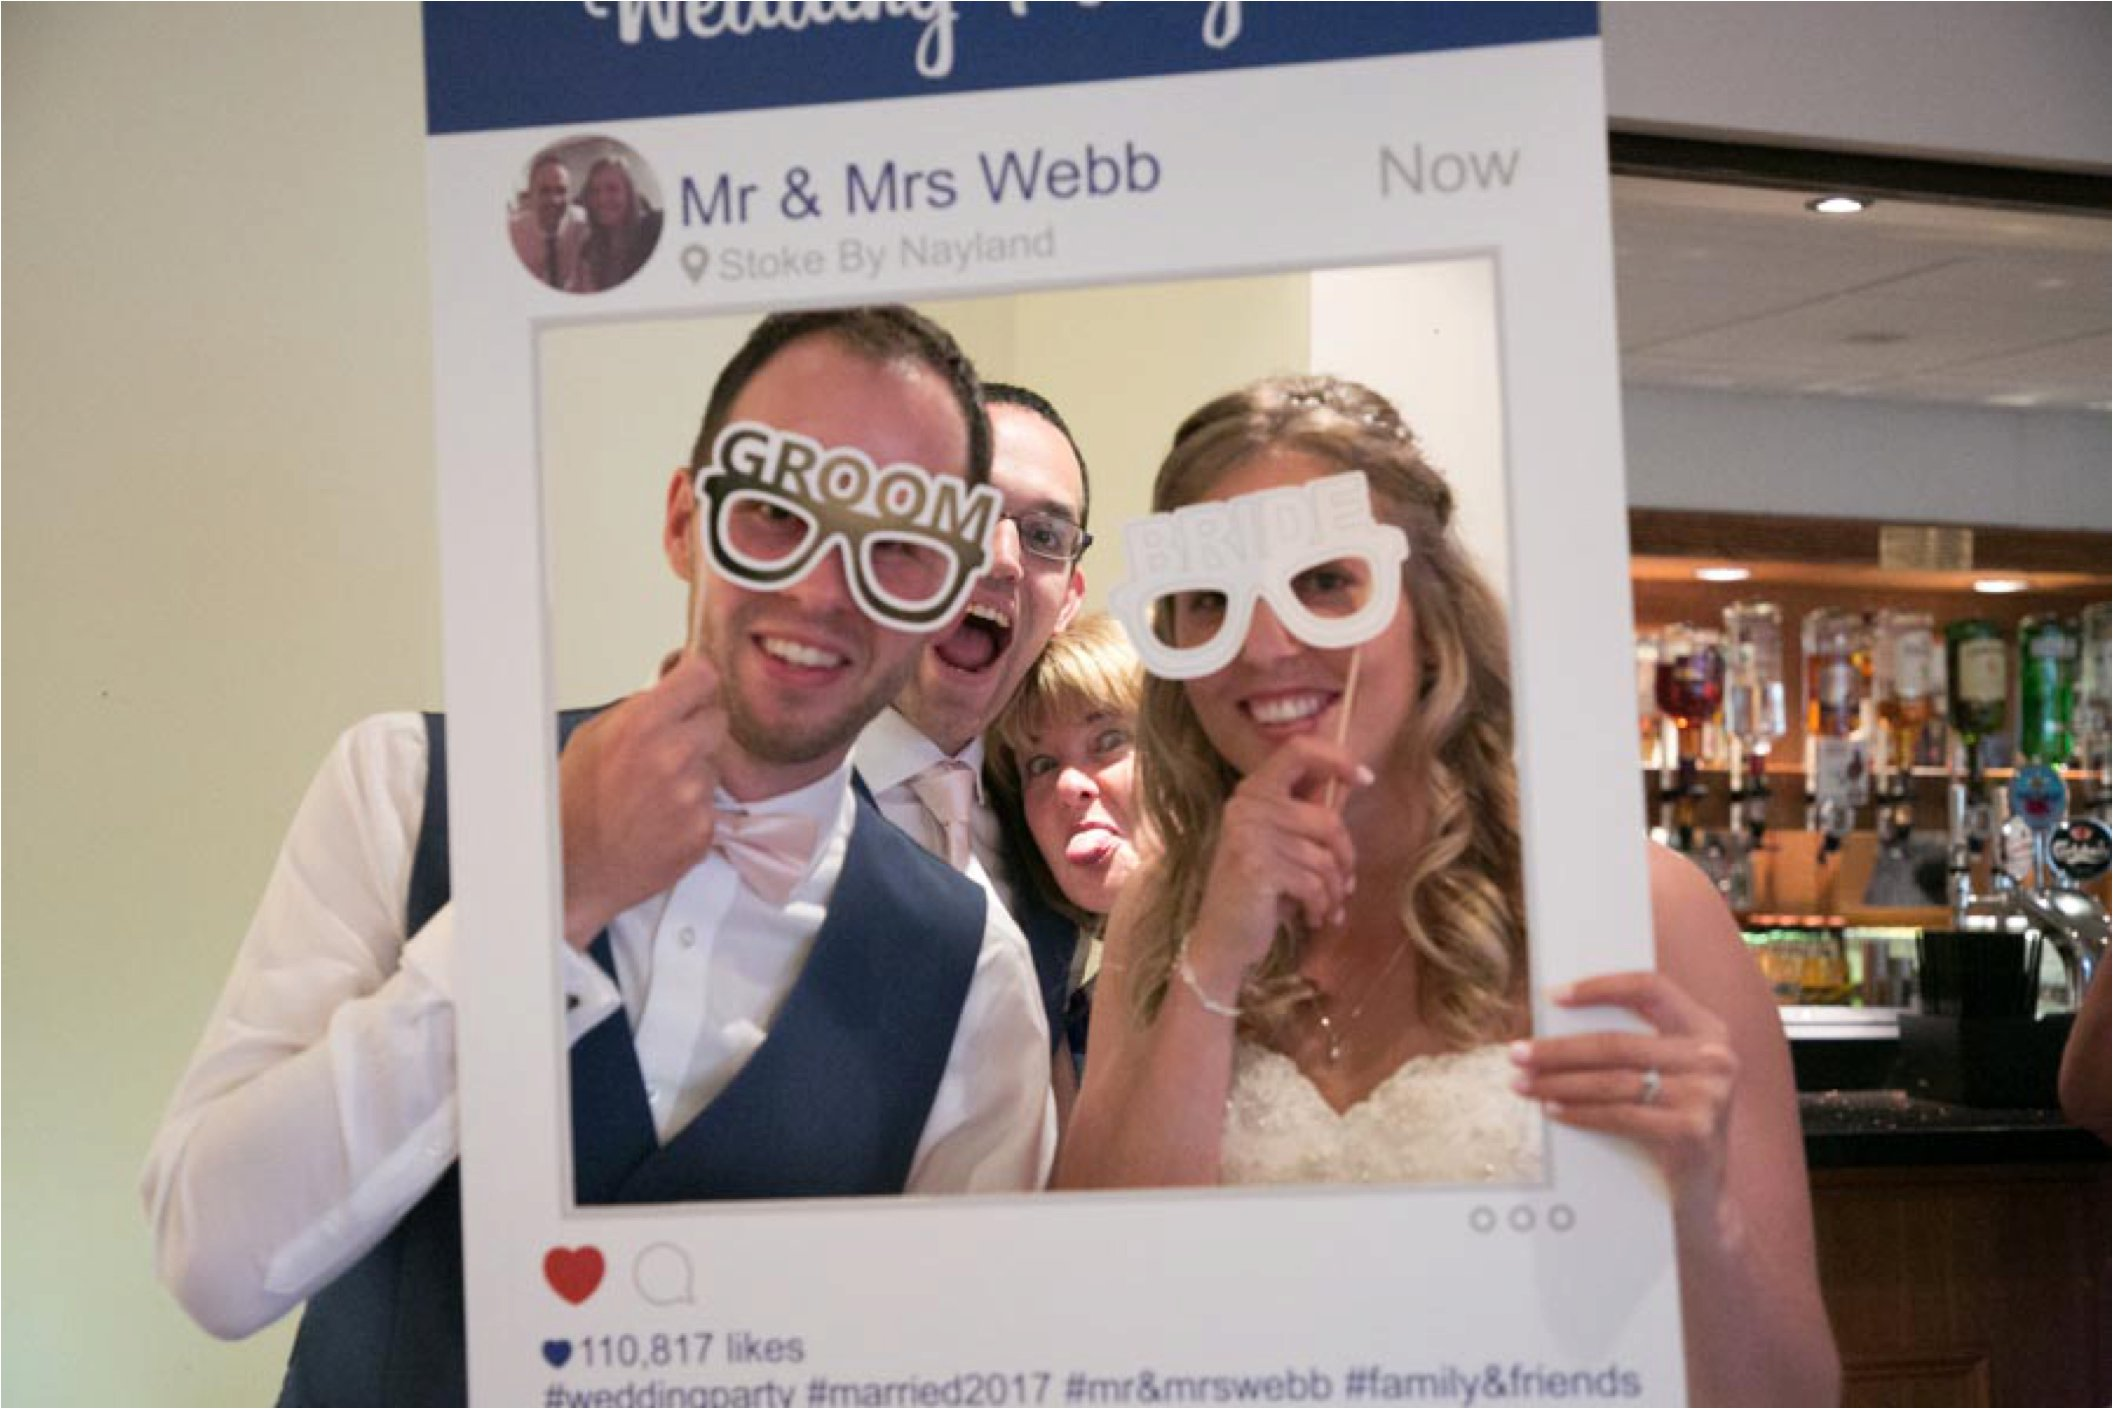 instagram selfie bride and groom stoke by nayland wedding